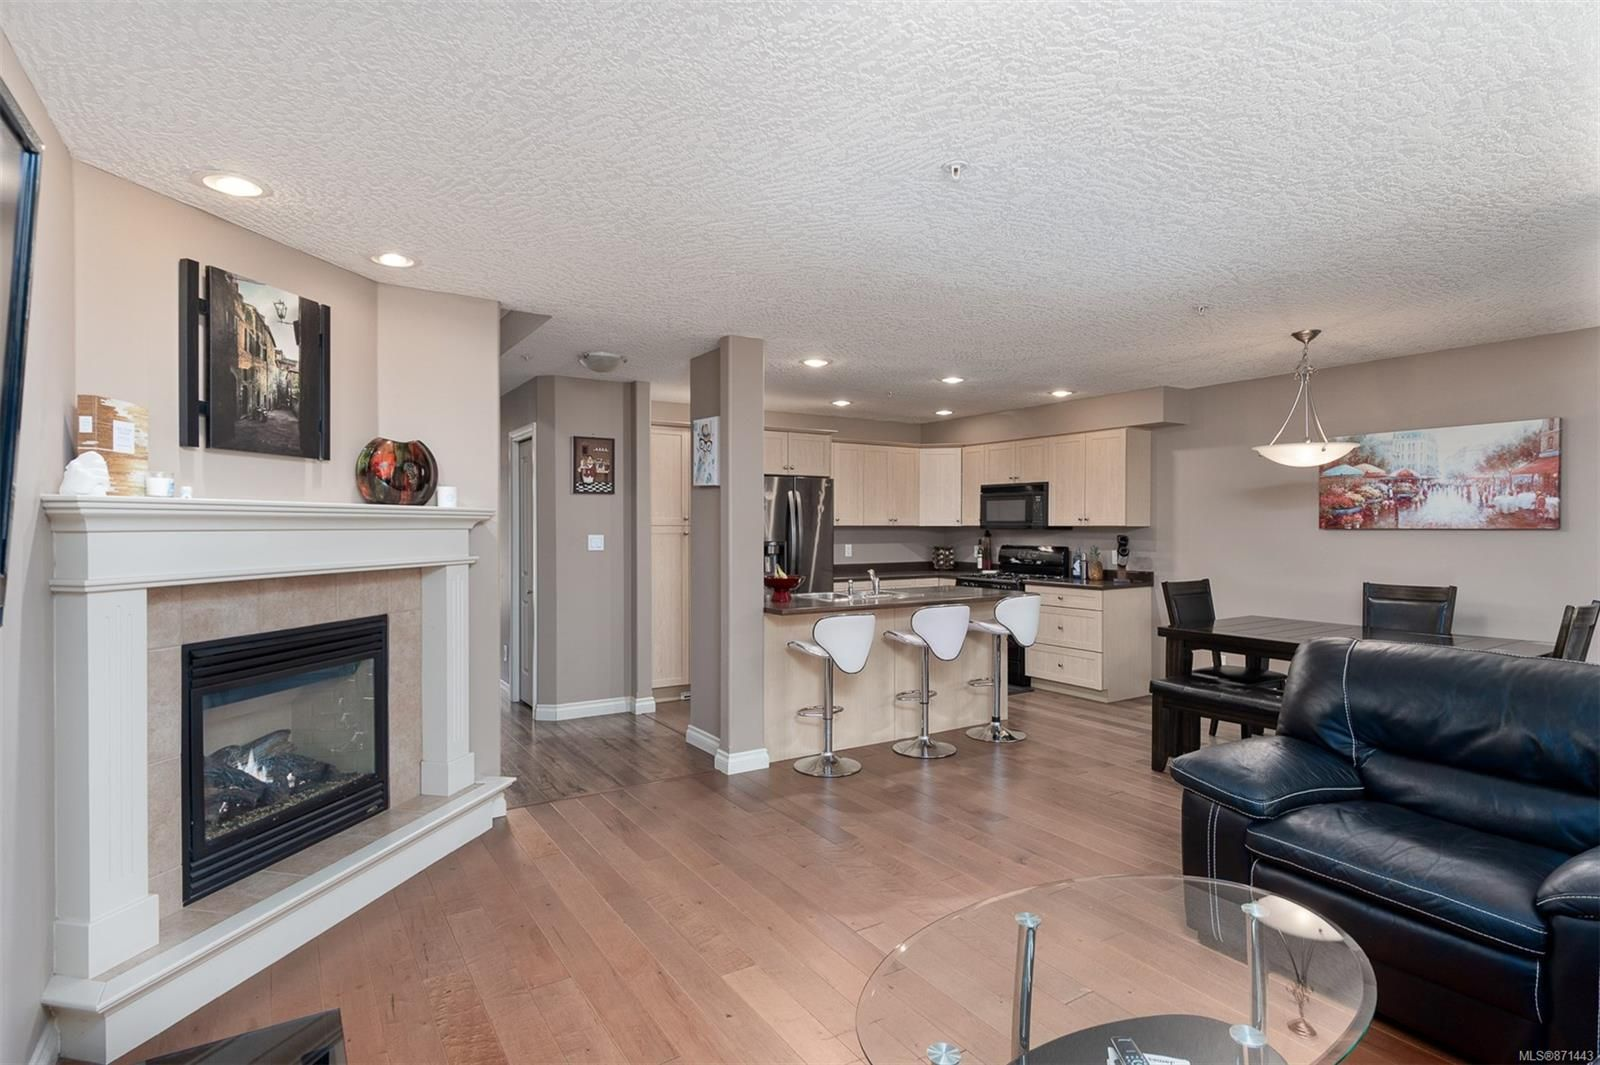 Main Photo: 12 199 Atkins Rd in : VR Six Mile Row/Townhouse for sale (View Royal)  : MLS®# 871443